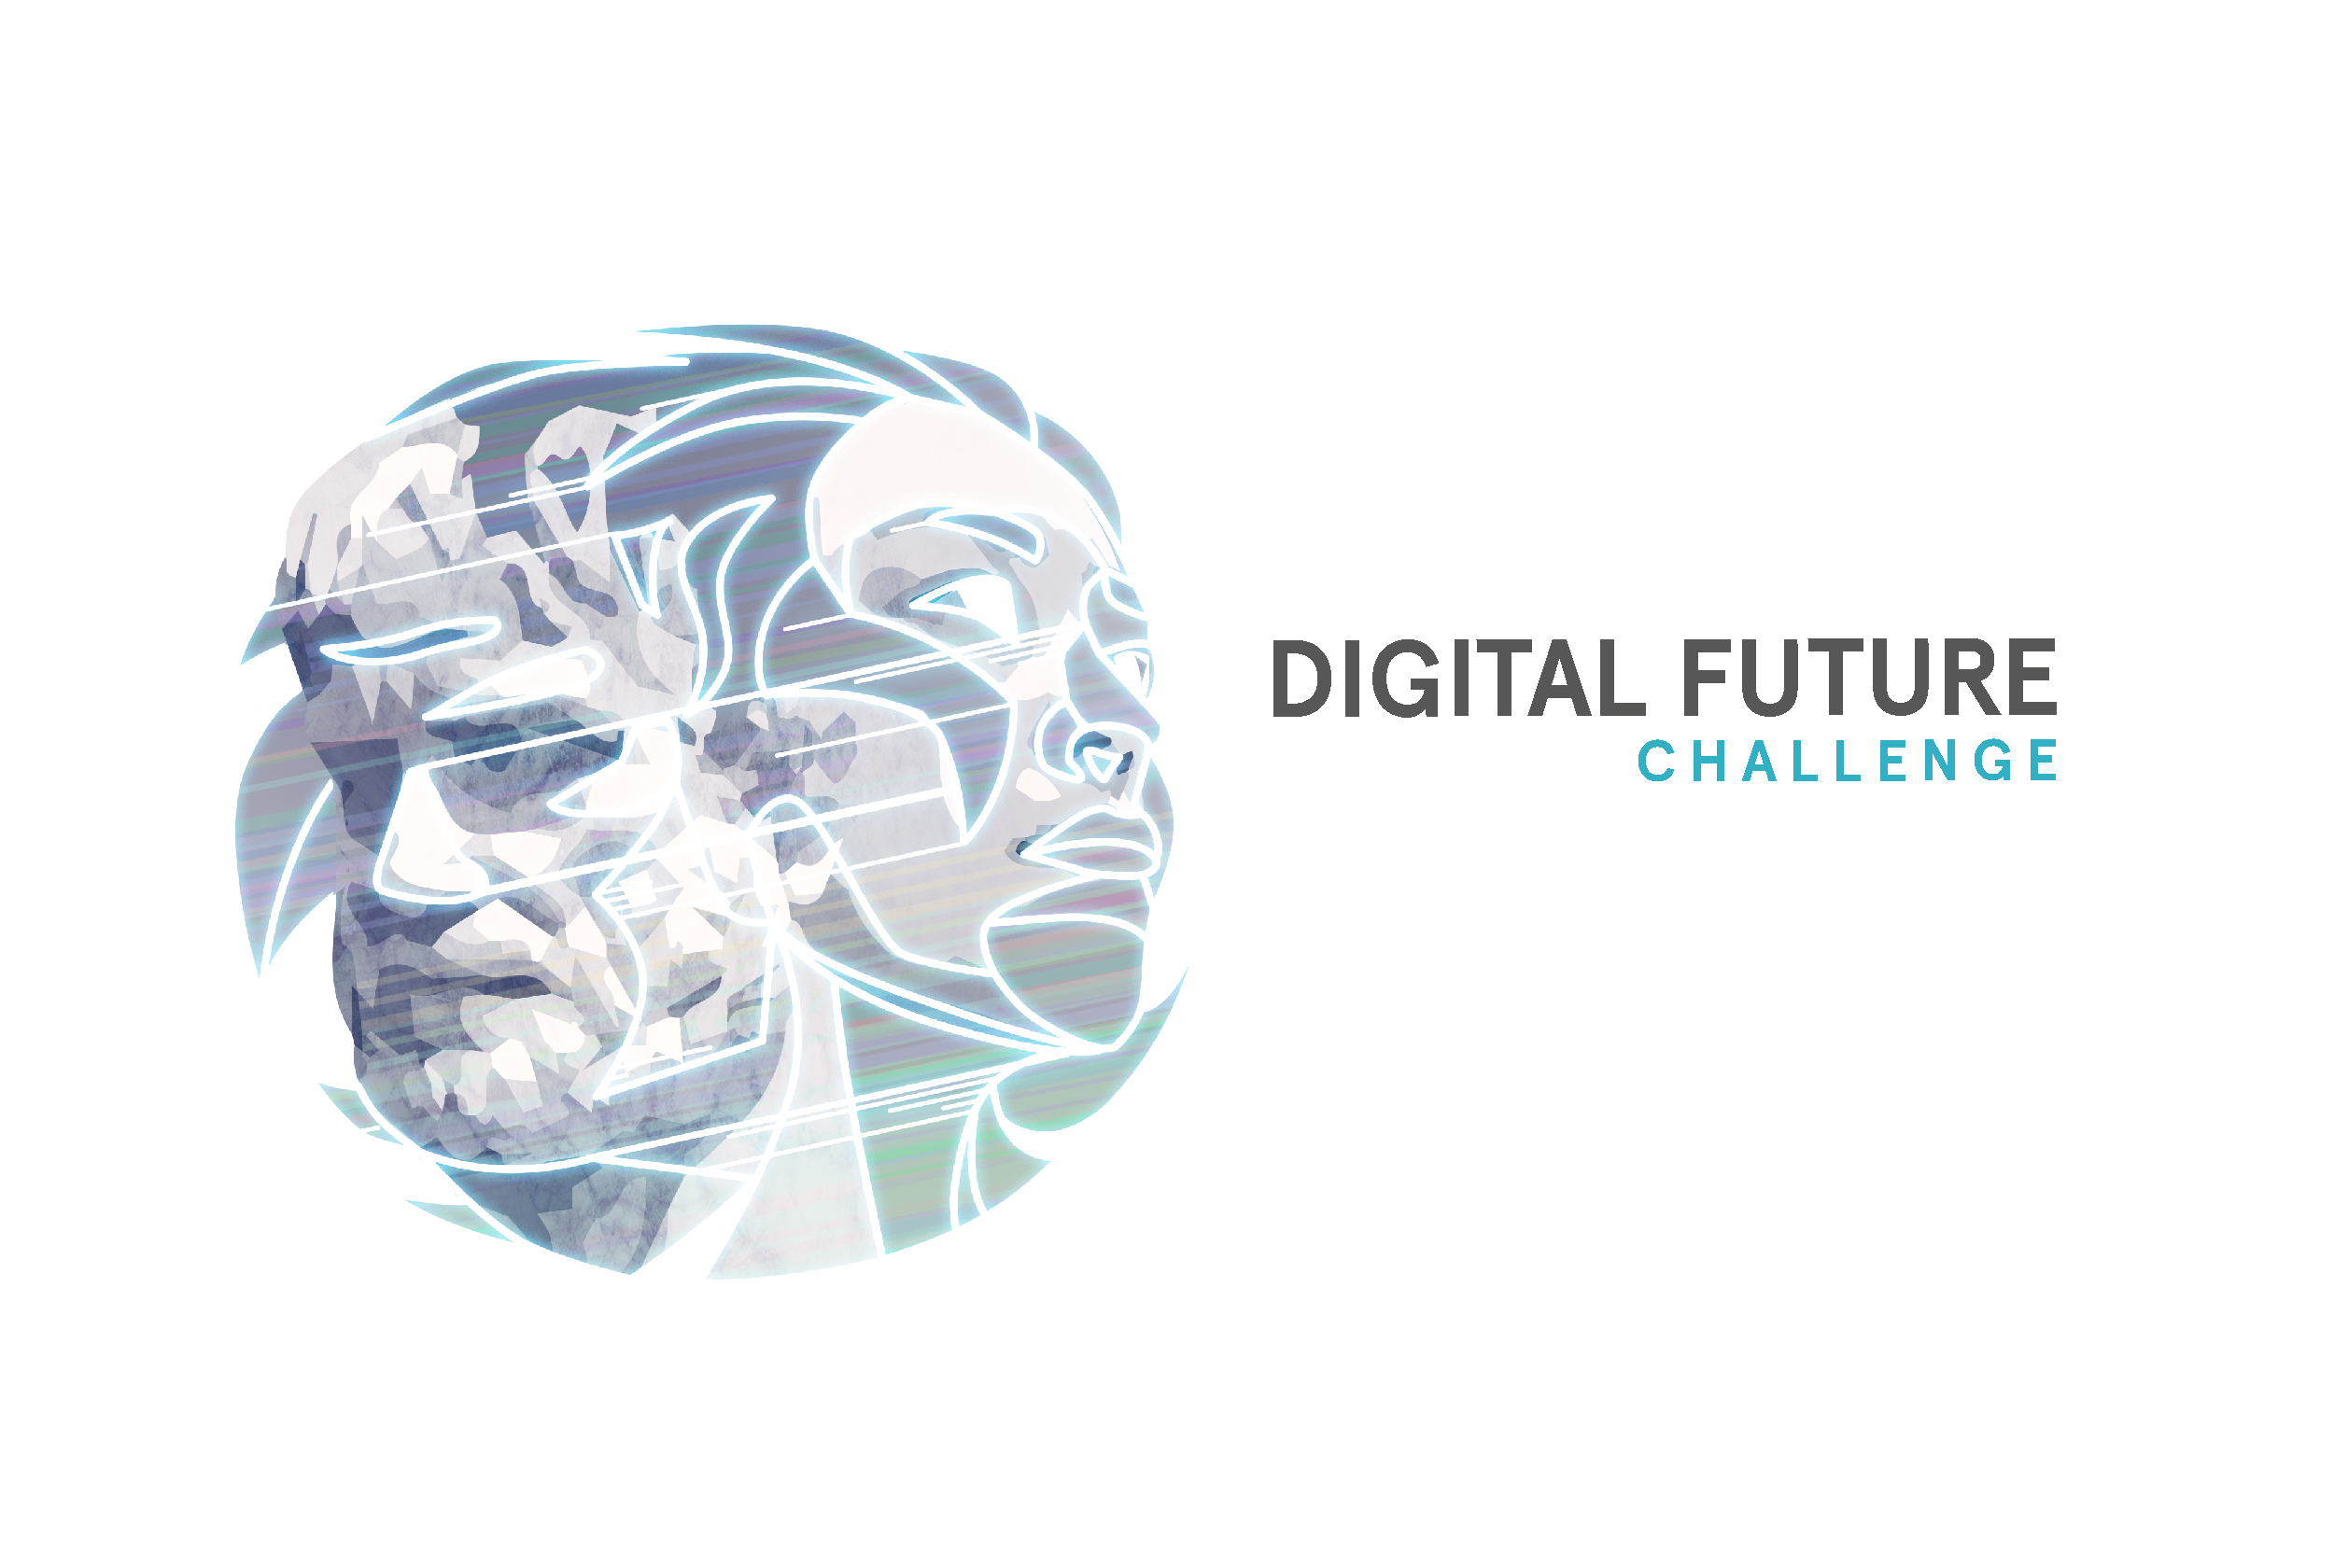 Deloitte-Stiftung x Initiative D21 – Digital Future Challenge